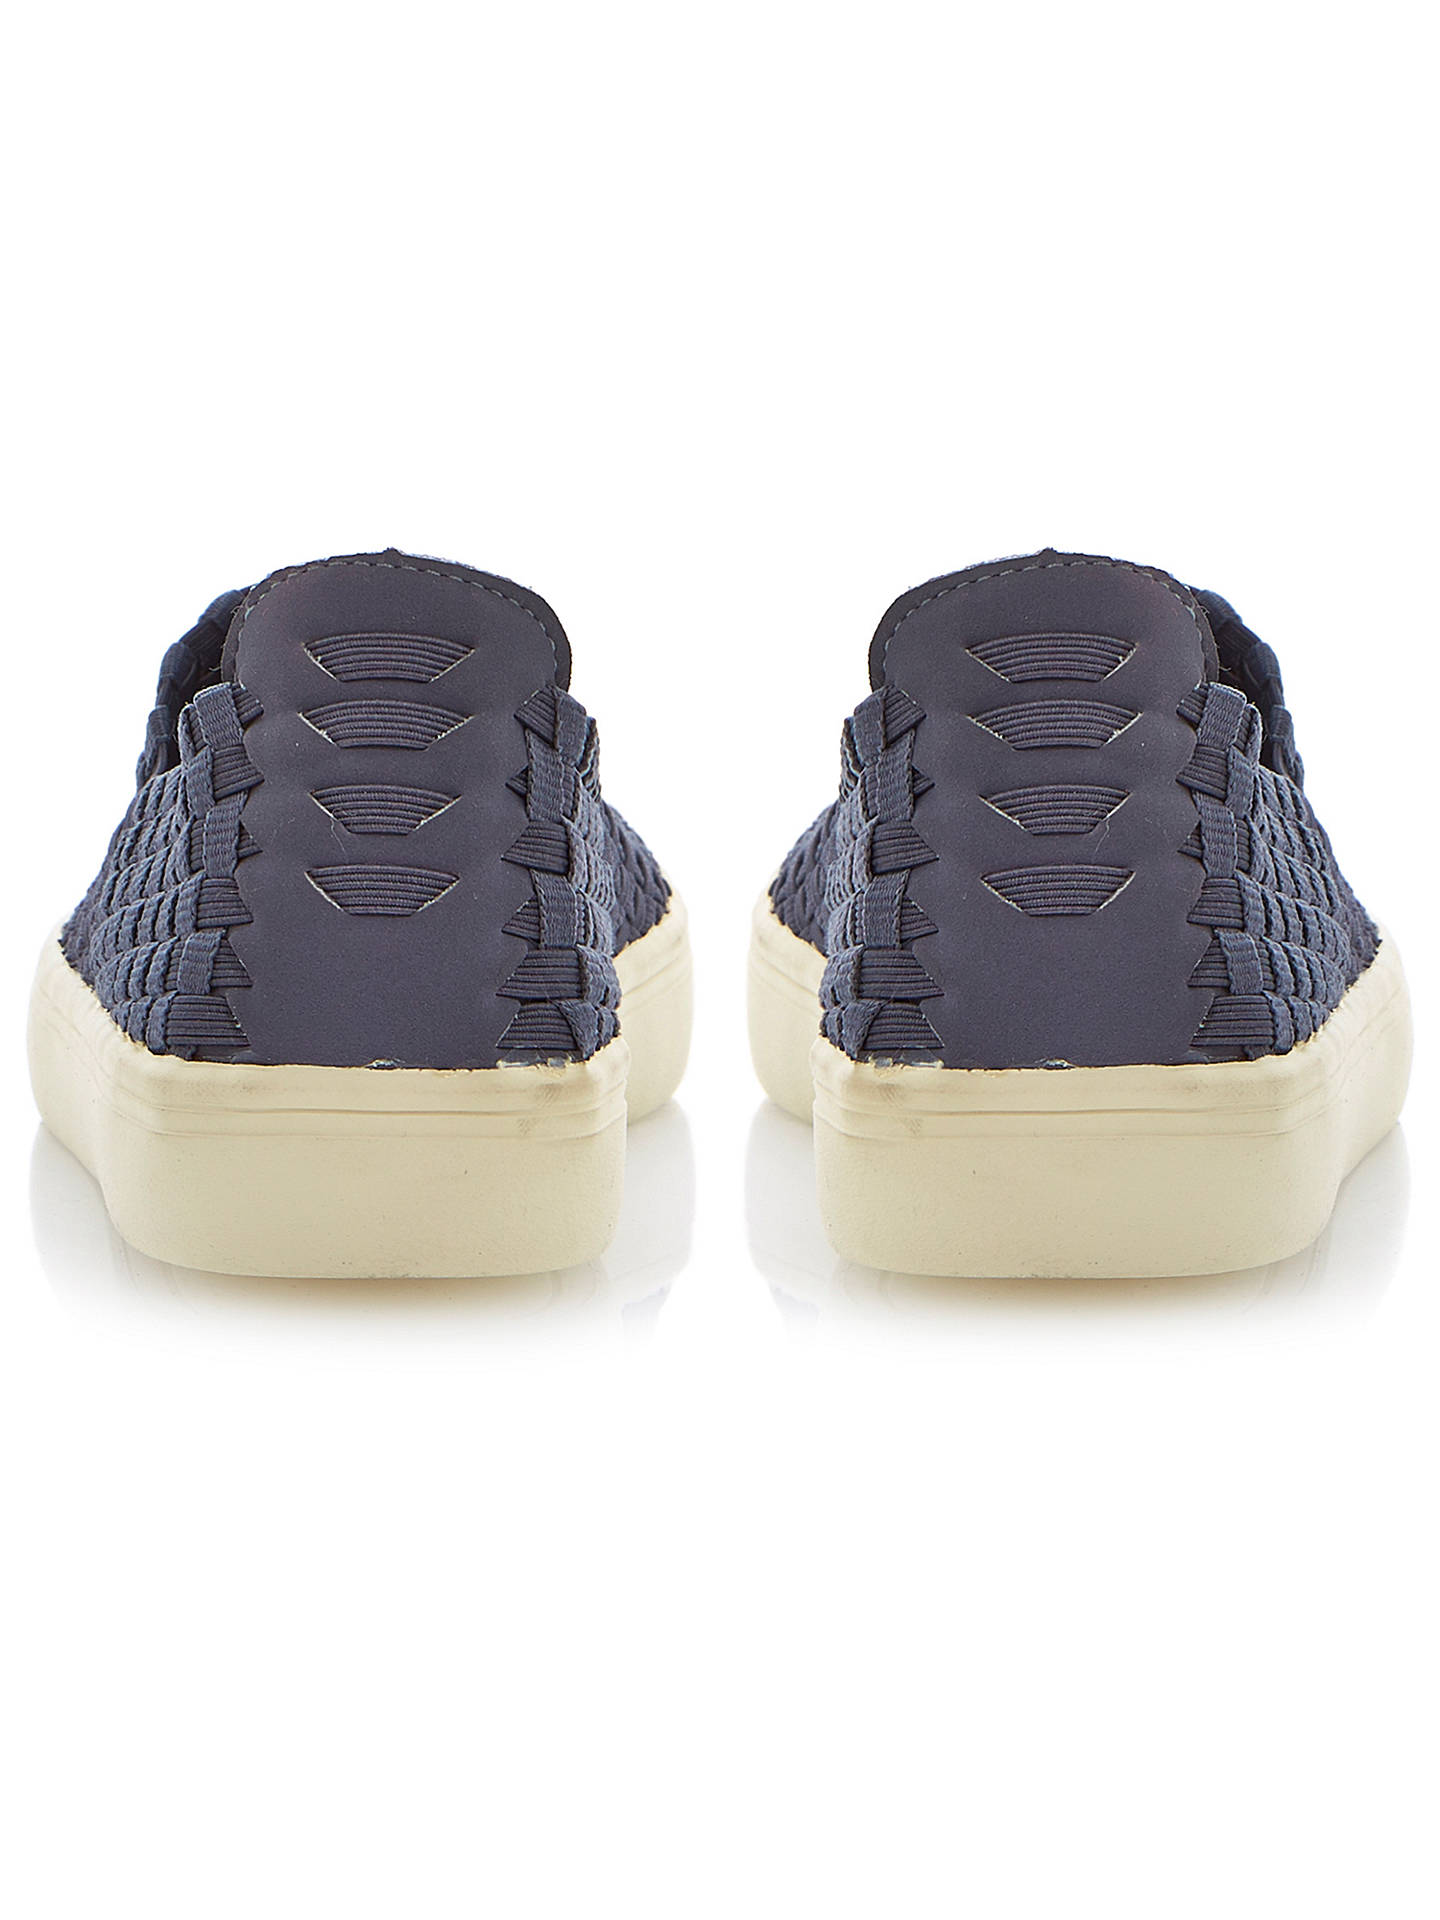 d231ad6d2f2 ... BuySteve Madden Exx Woven Trainers